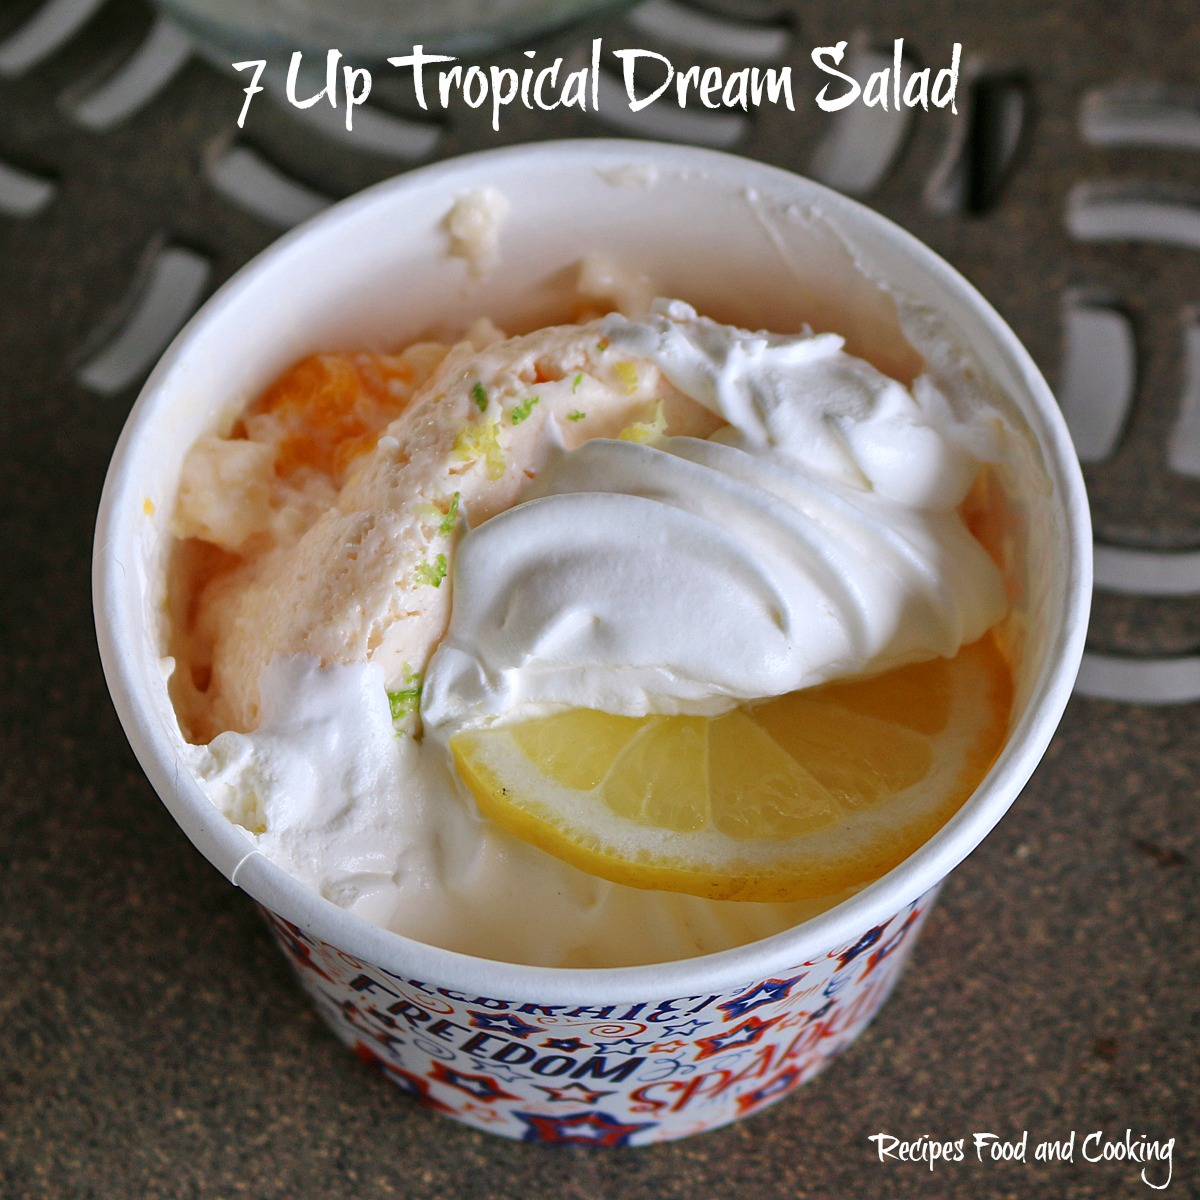 7 UP Tropical Dream Salad